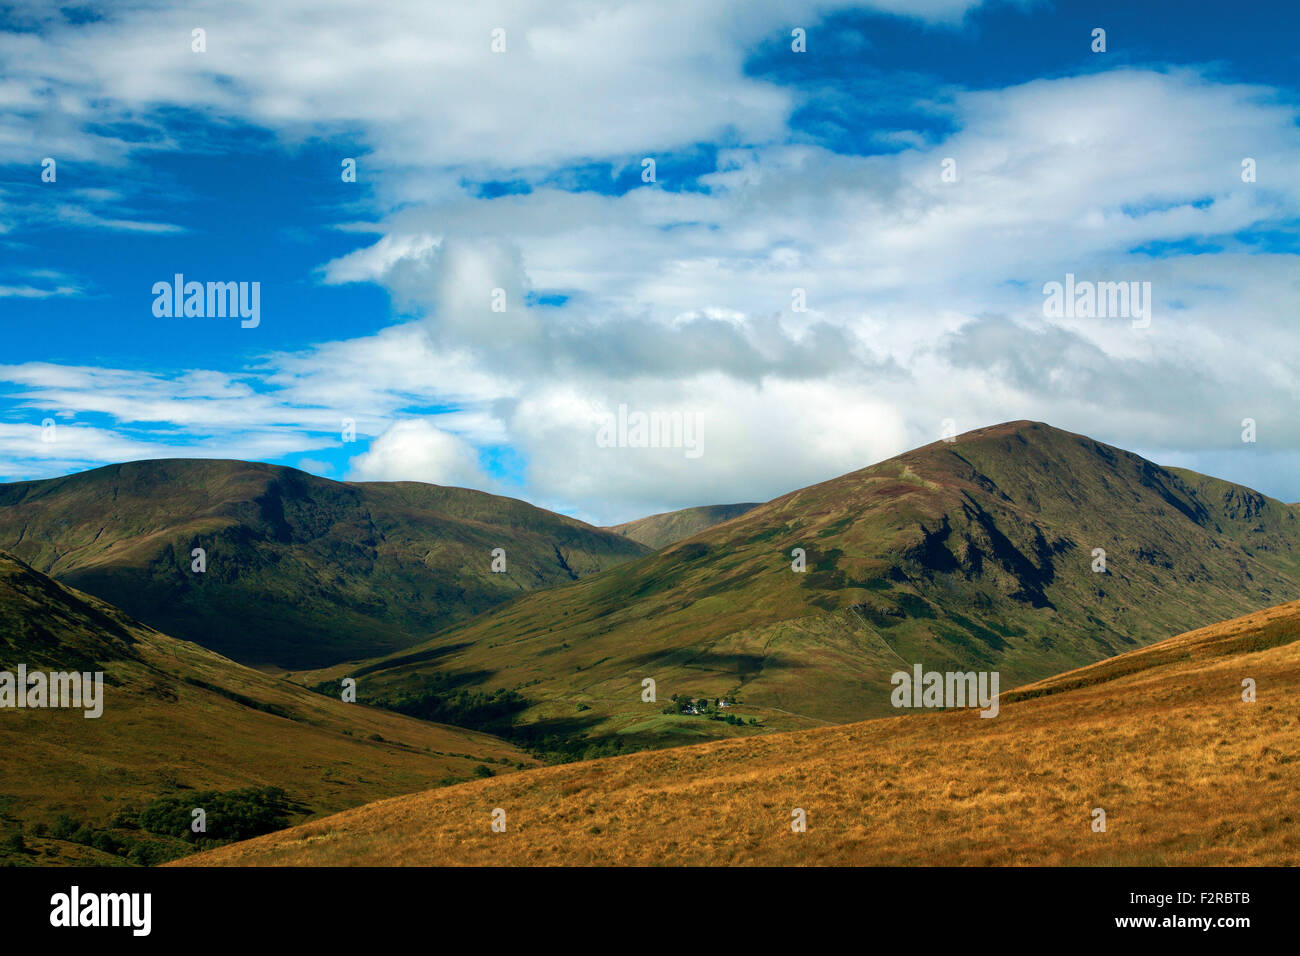 Glen Luss and the Luss Hills from Beinn Dubh, Loch Lomond and the Trossachs National Park - Stock Image